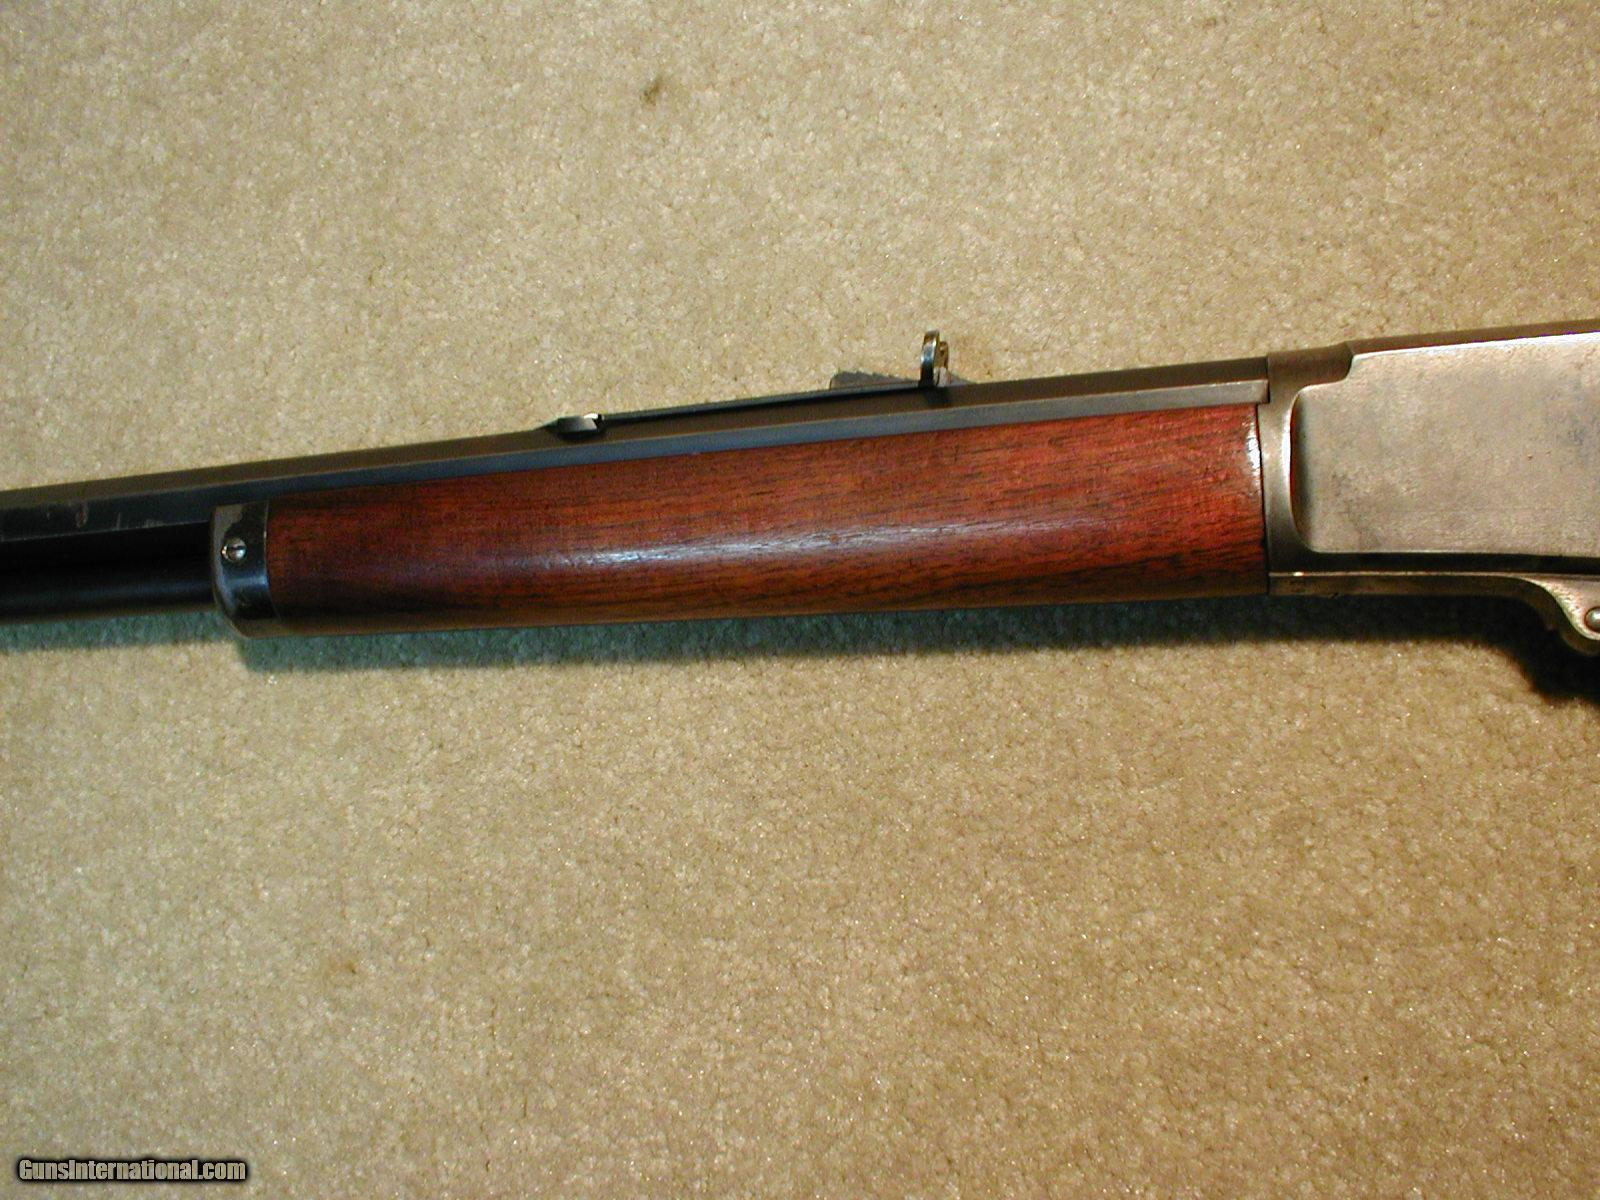 dating a marlin rifle by serial number Dating a marlin rifle by serial number 13 year old dating site free her the firearm blog over 50 speed dating bristol dating a marlin rifle by serial number.